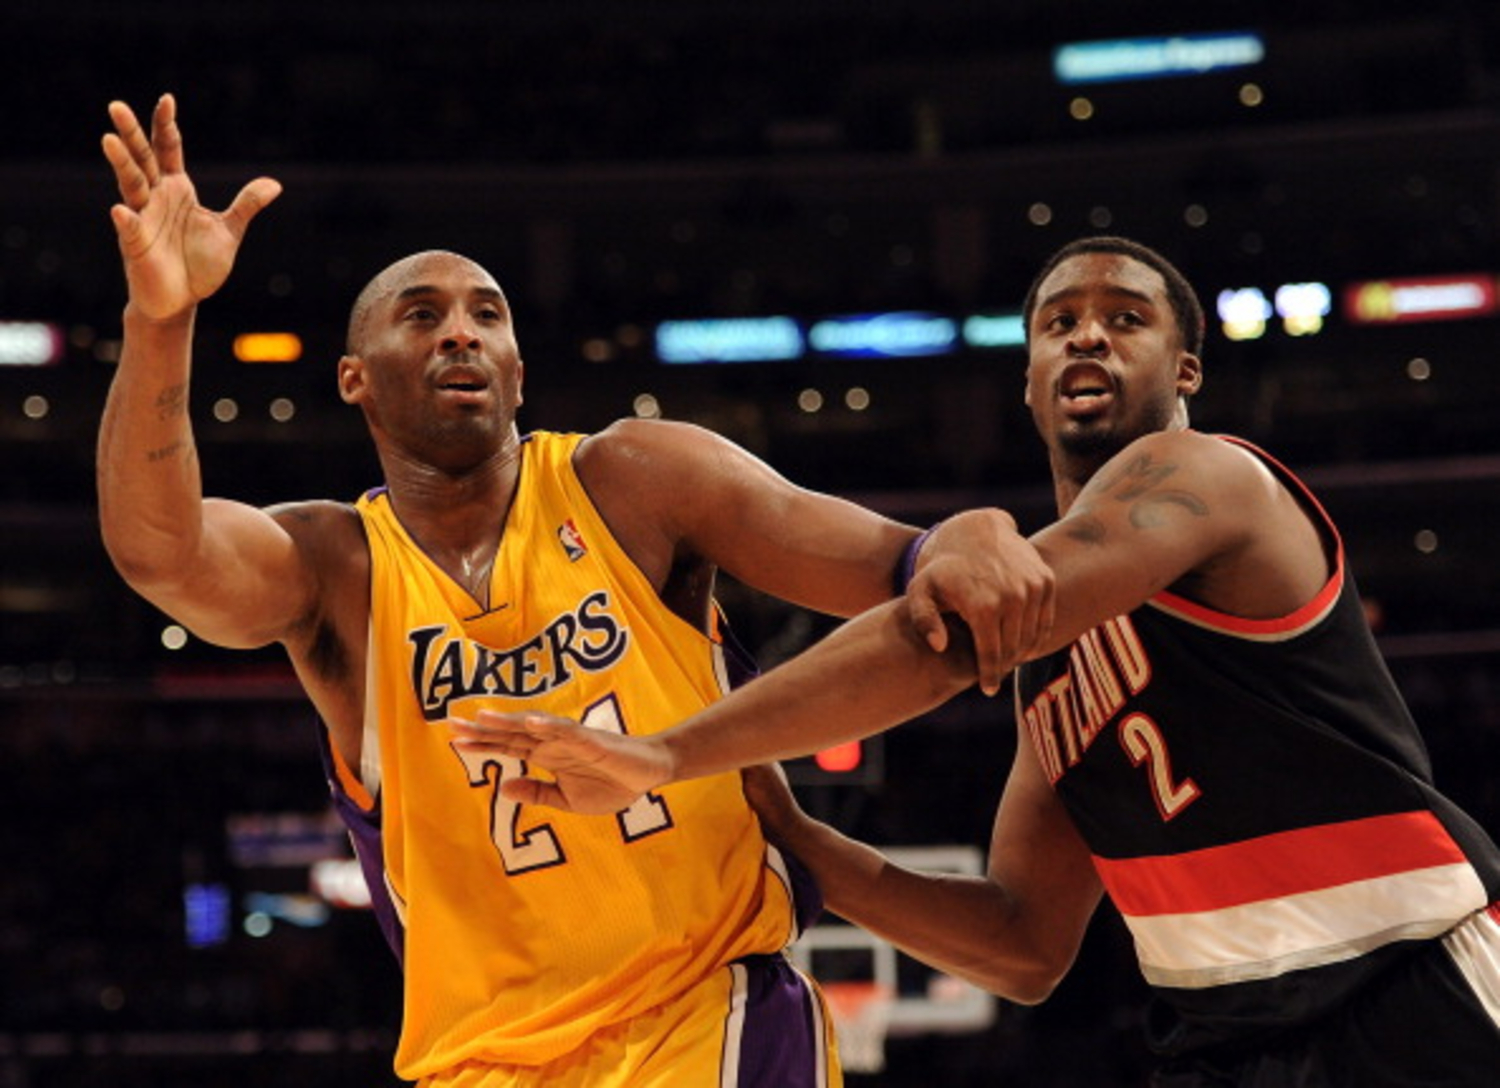 Kobe Bryant's Honest Advice Motivated Wesley Matthews During His Injury Rehab